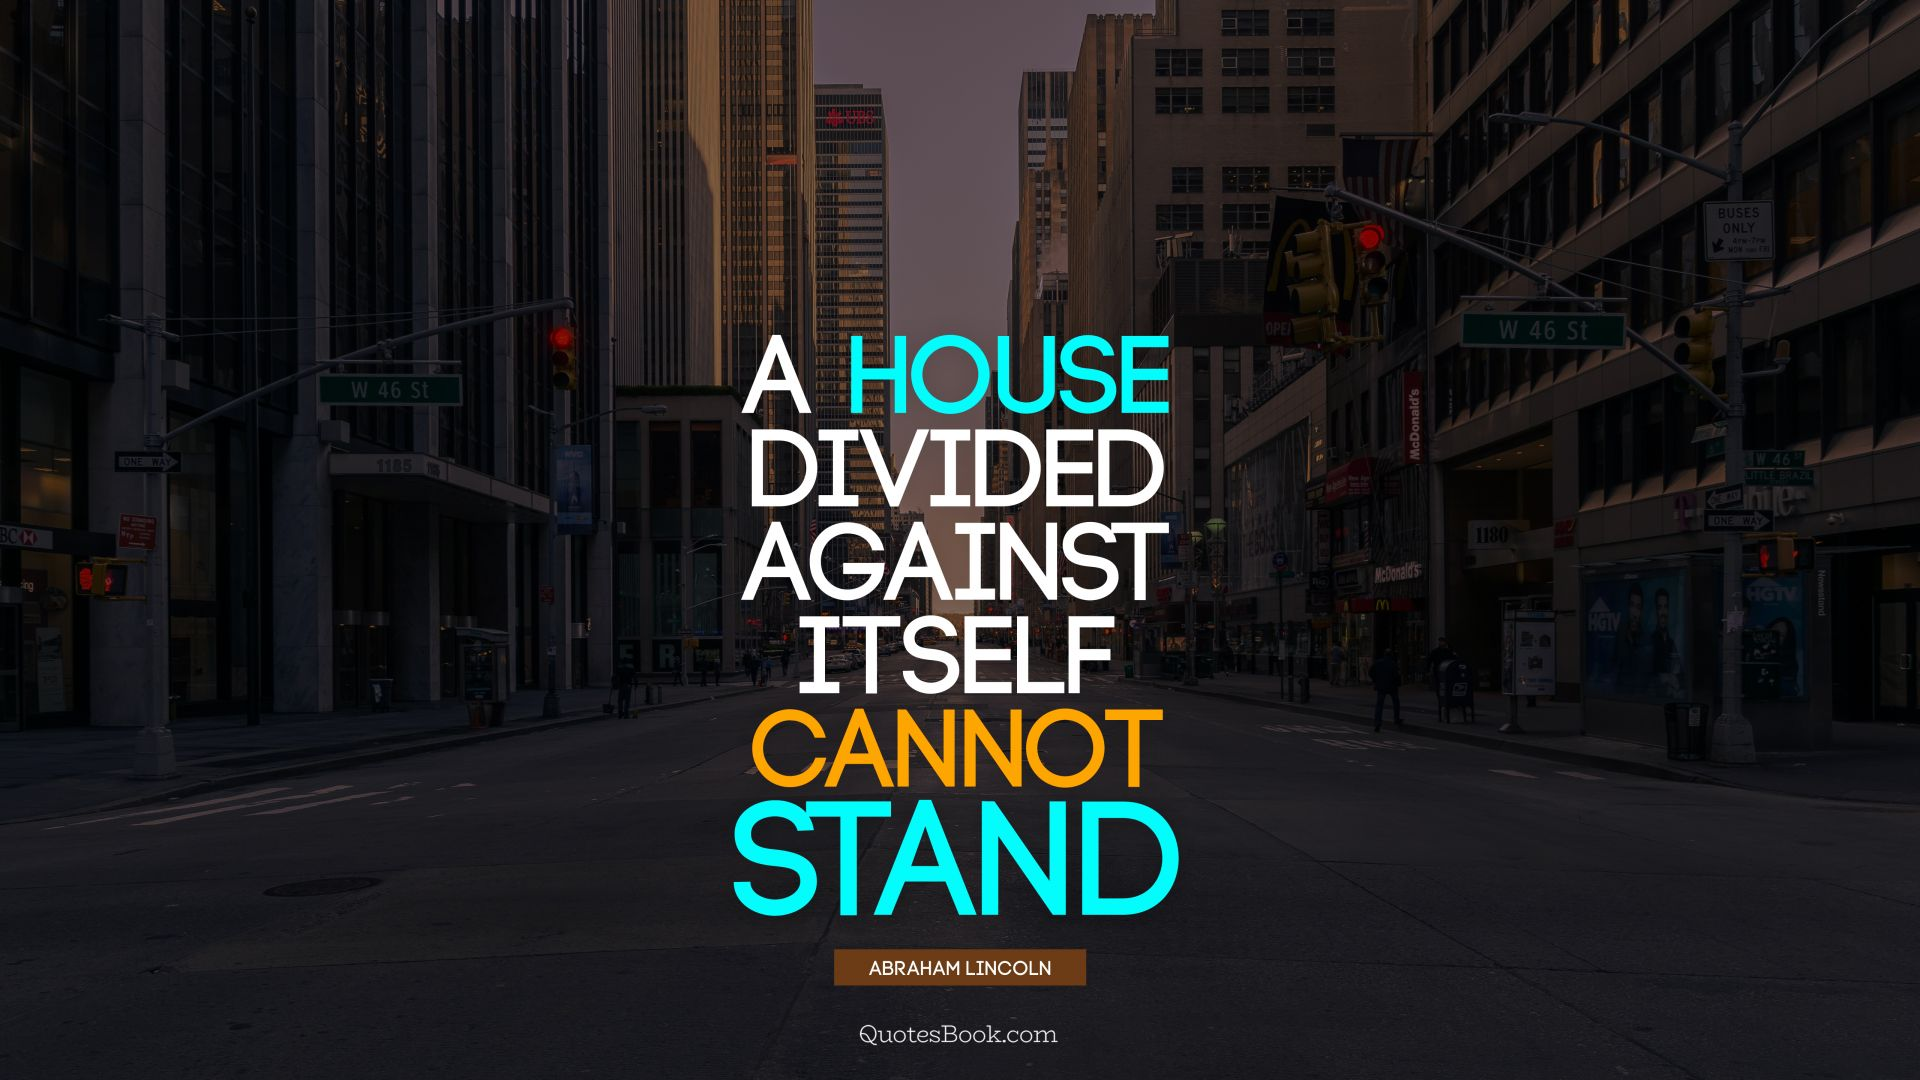 A house divided against itself cannot stand. - Quote by Abraham Lincoln